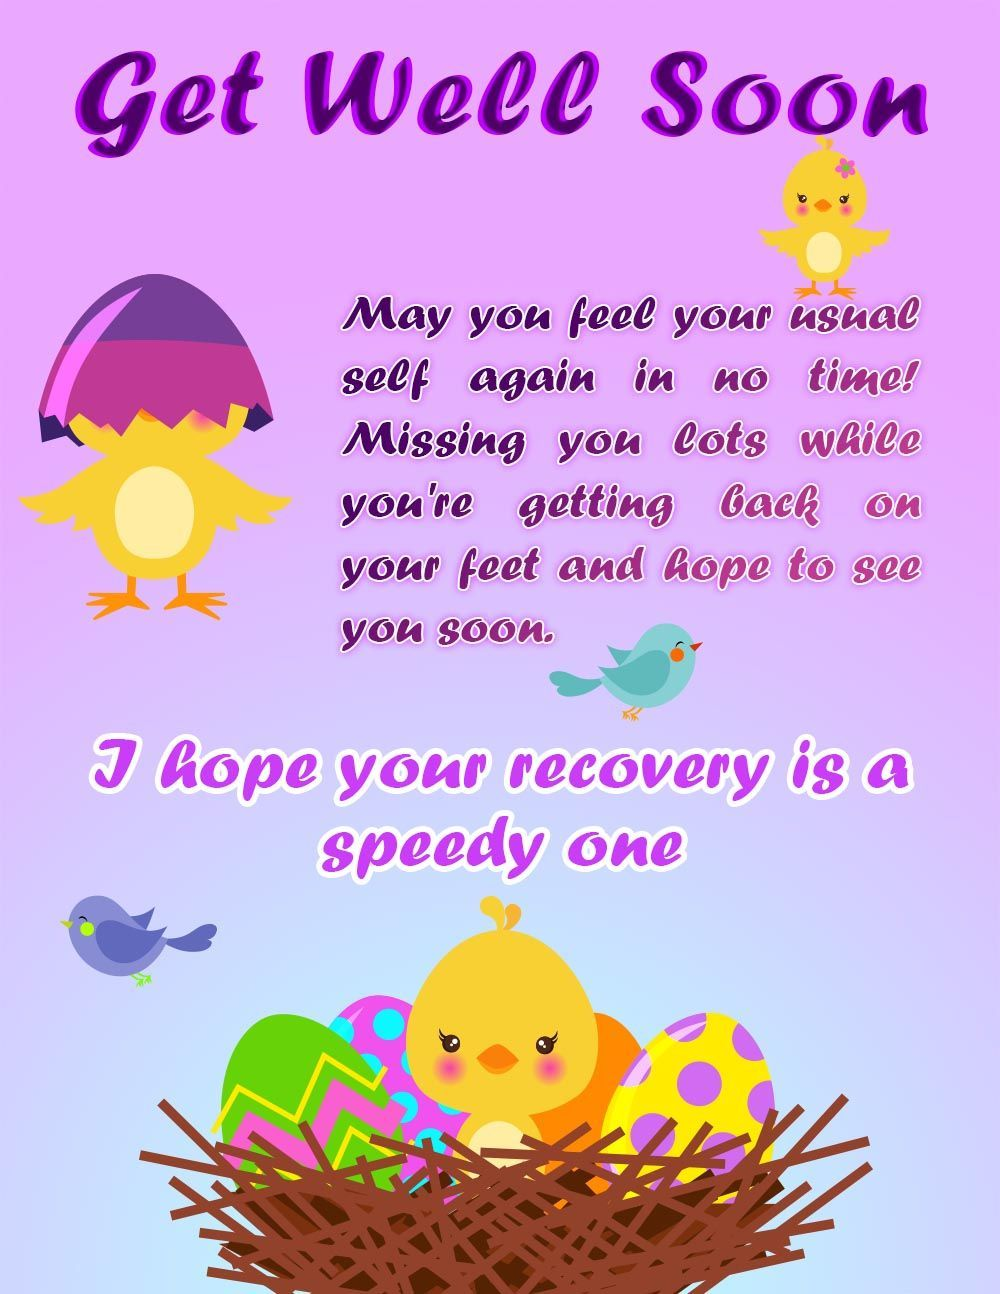 50 Inspiring And Funny Get Well Soon Quotes And Poems For Your Family Page 7 Of 31 Quotespost In 2021 Get Well Soon Get Well Cards Get Well